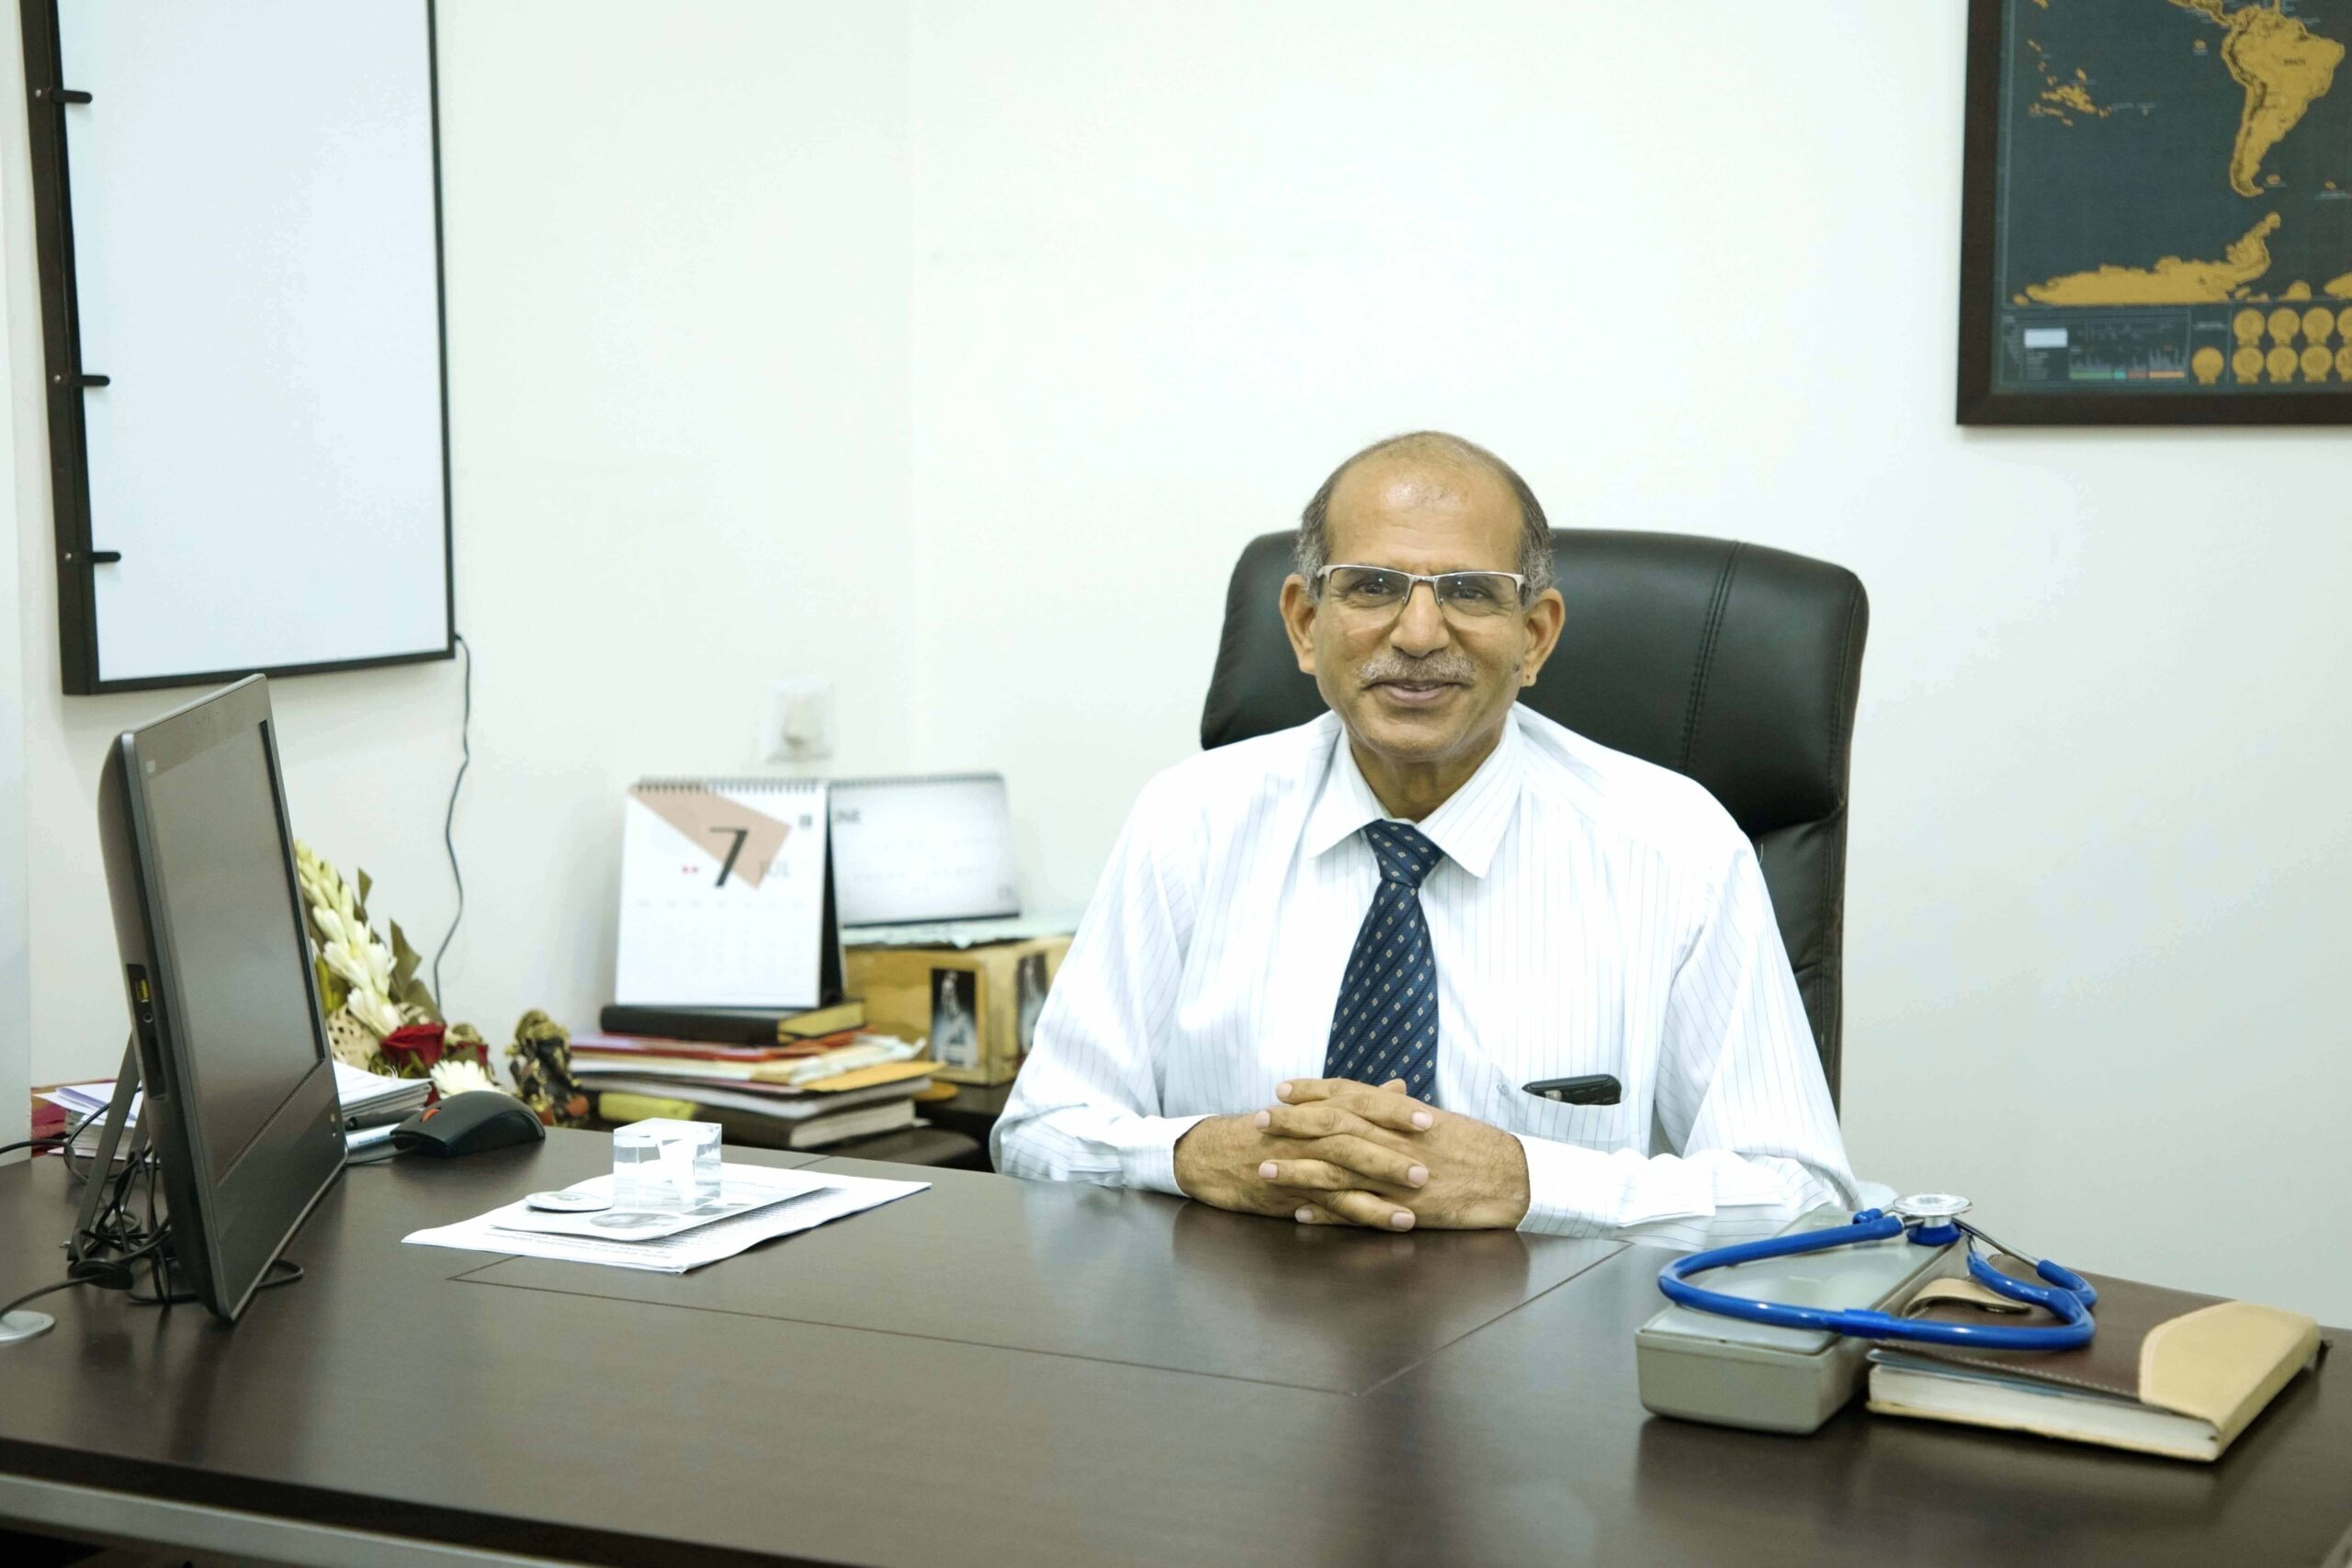 Dr Ranjit Jagtap Best Cardiothoracic Surgeon in Pune